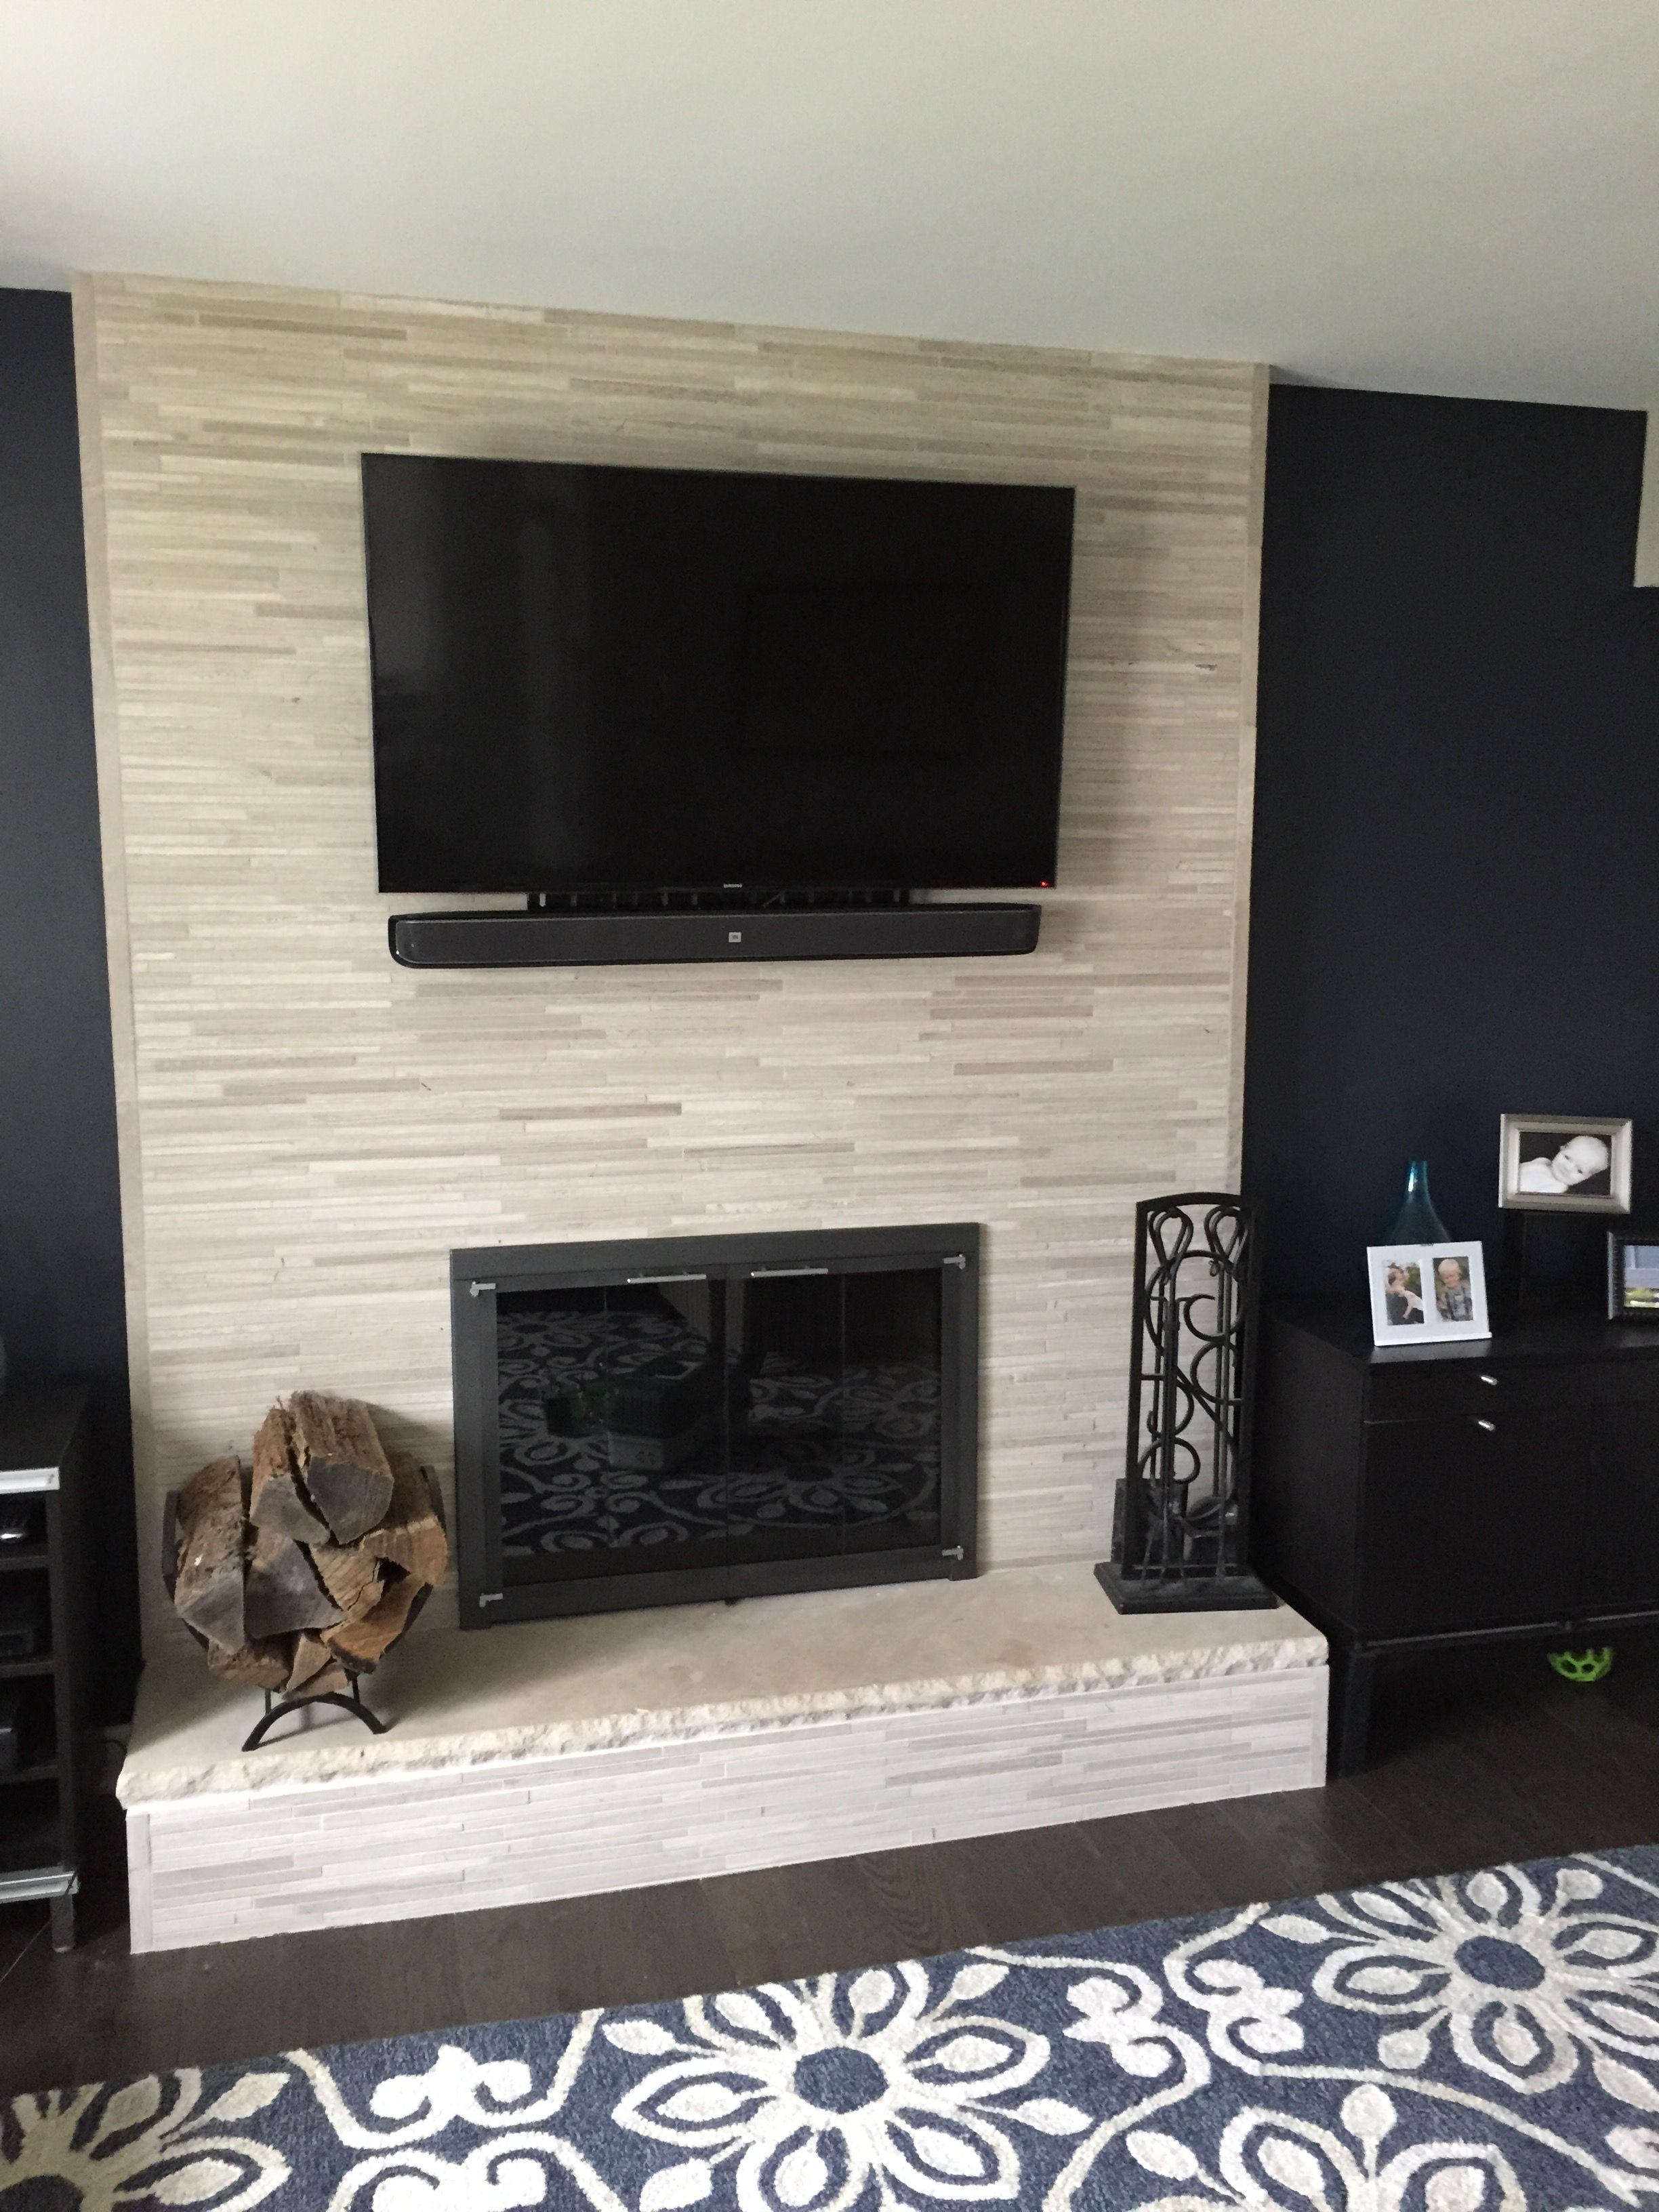 Can You Mount A Tv On A Brick Fireplace Elegant Our Old Fireplace Was 80 S 90 S Brick Veneer to Give It An